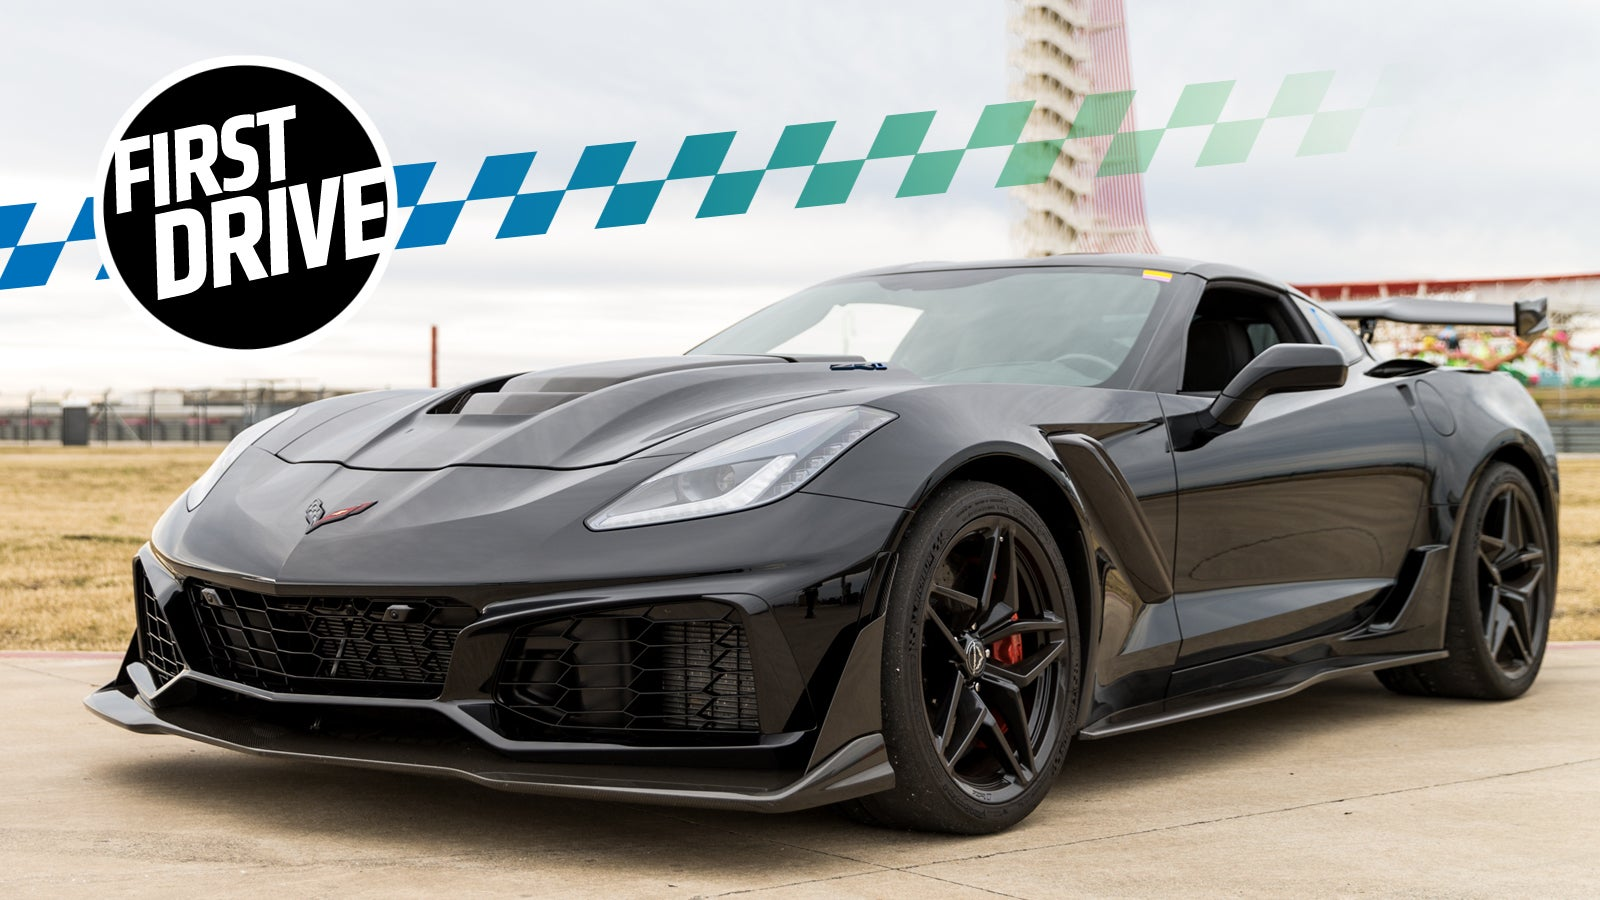 The 2019 Chevrolet Corvette Zr1 Feels Like A Rocket Assembled By